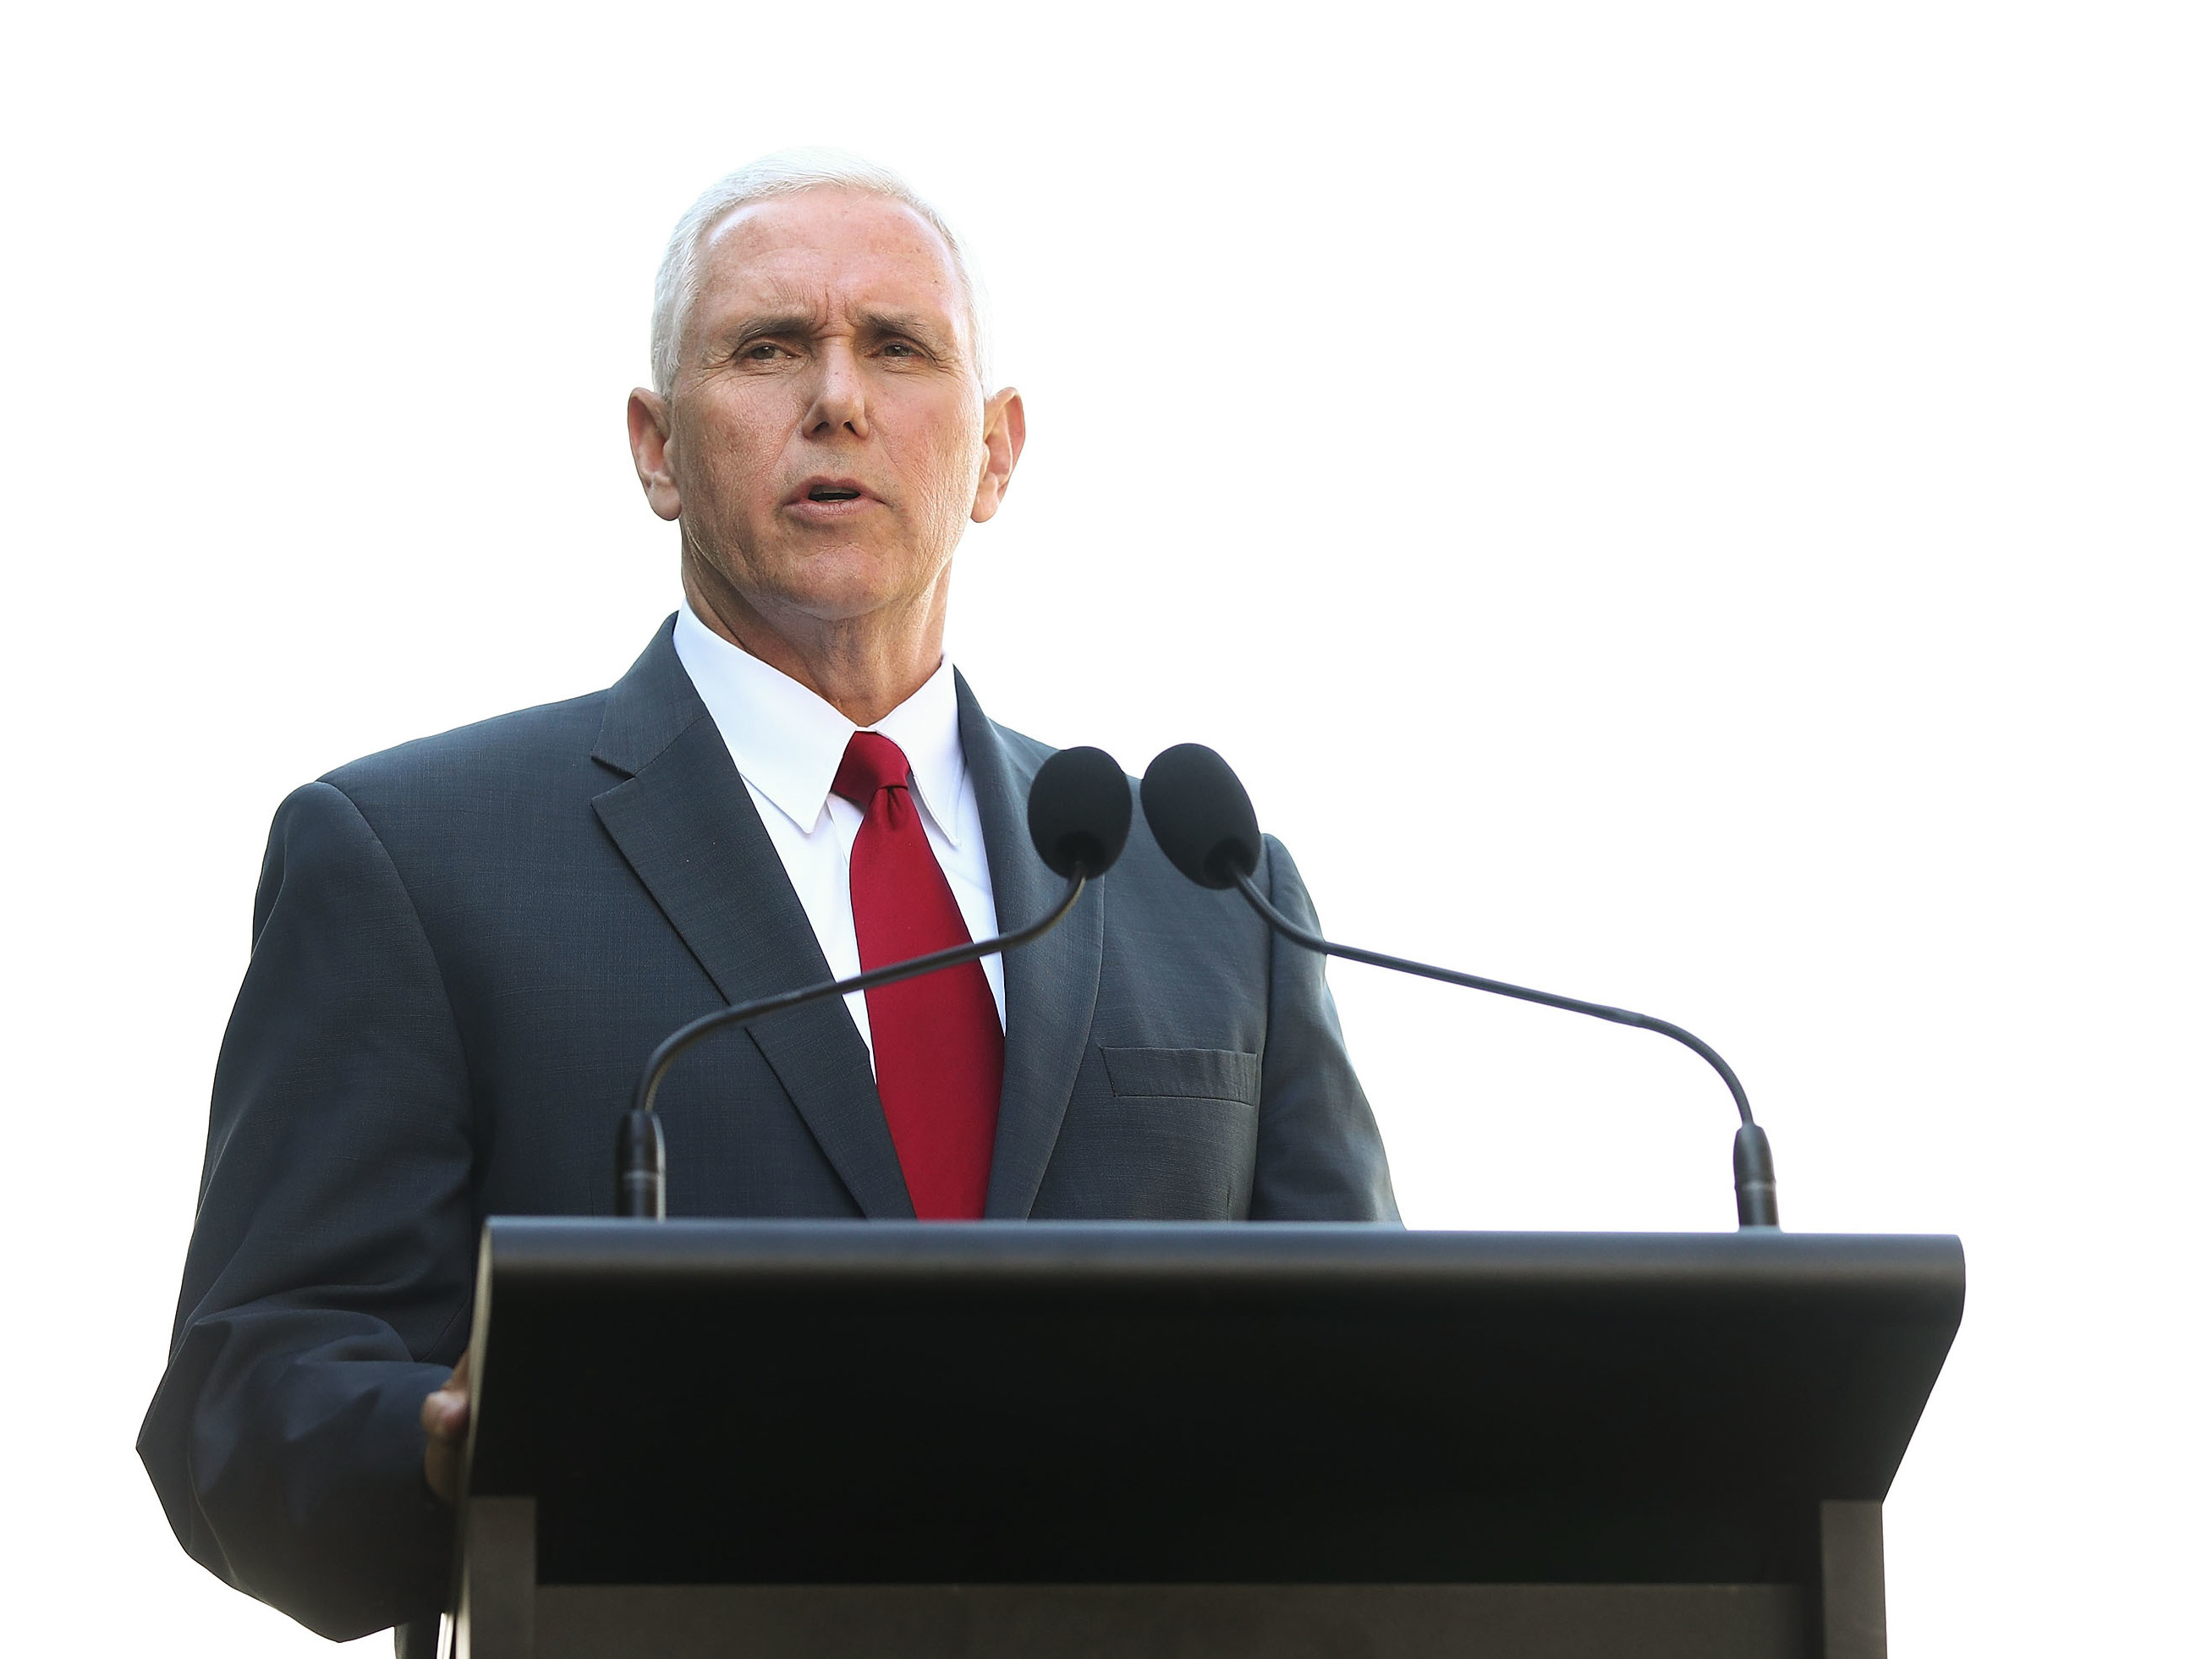 Pence hires outside legal counsel